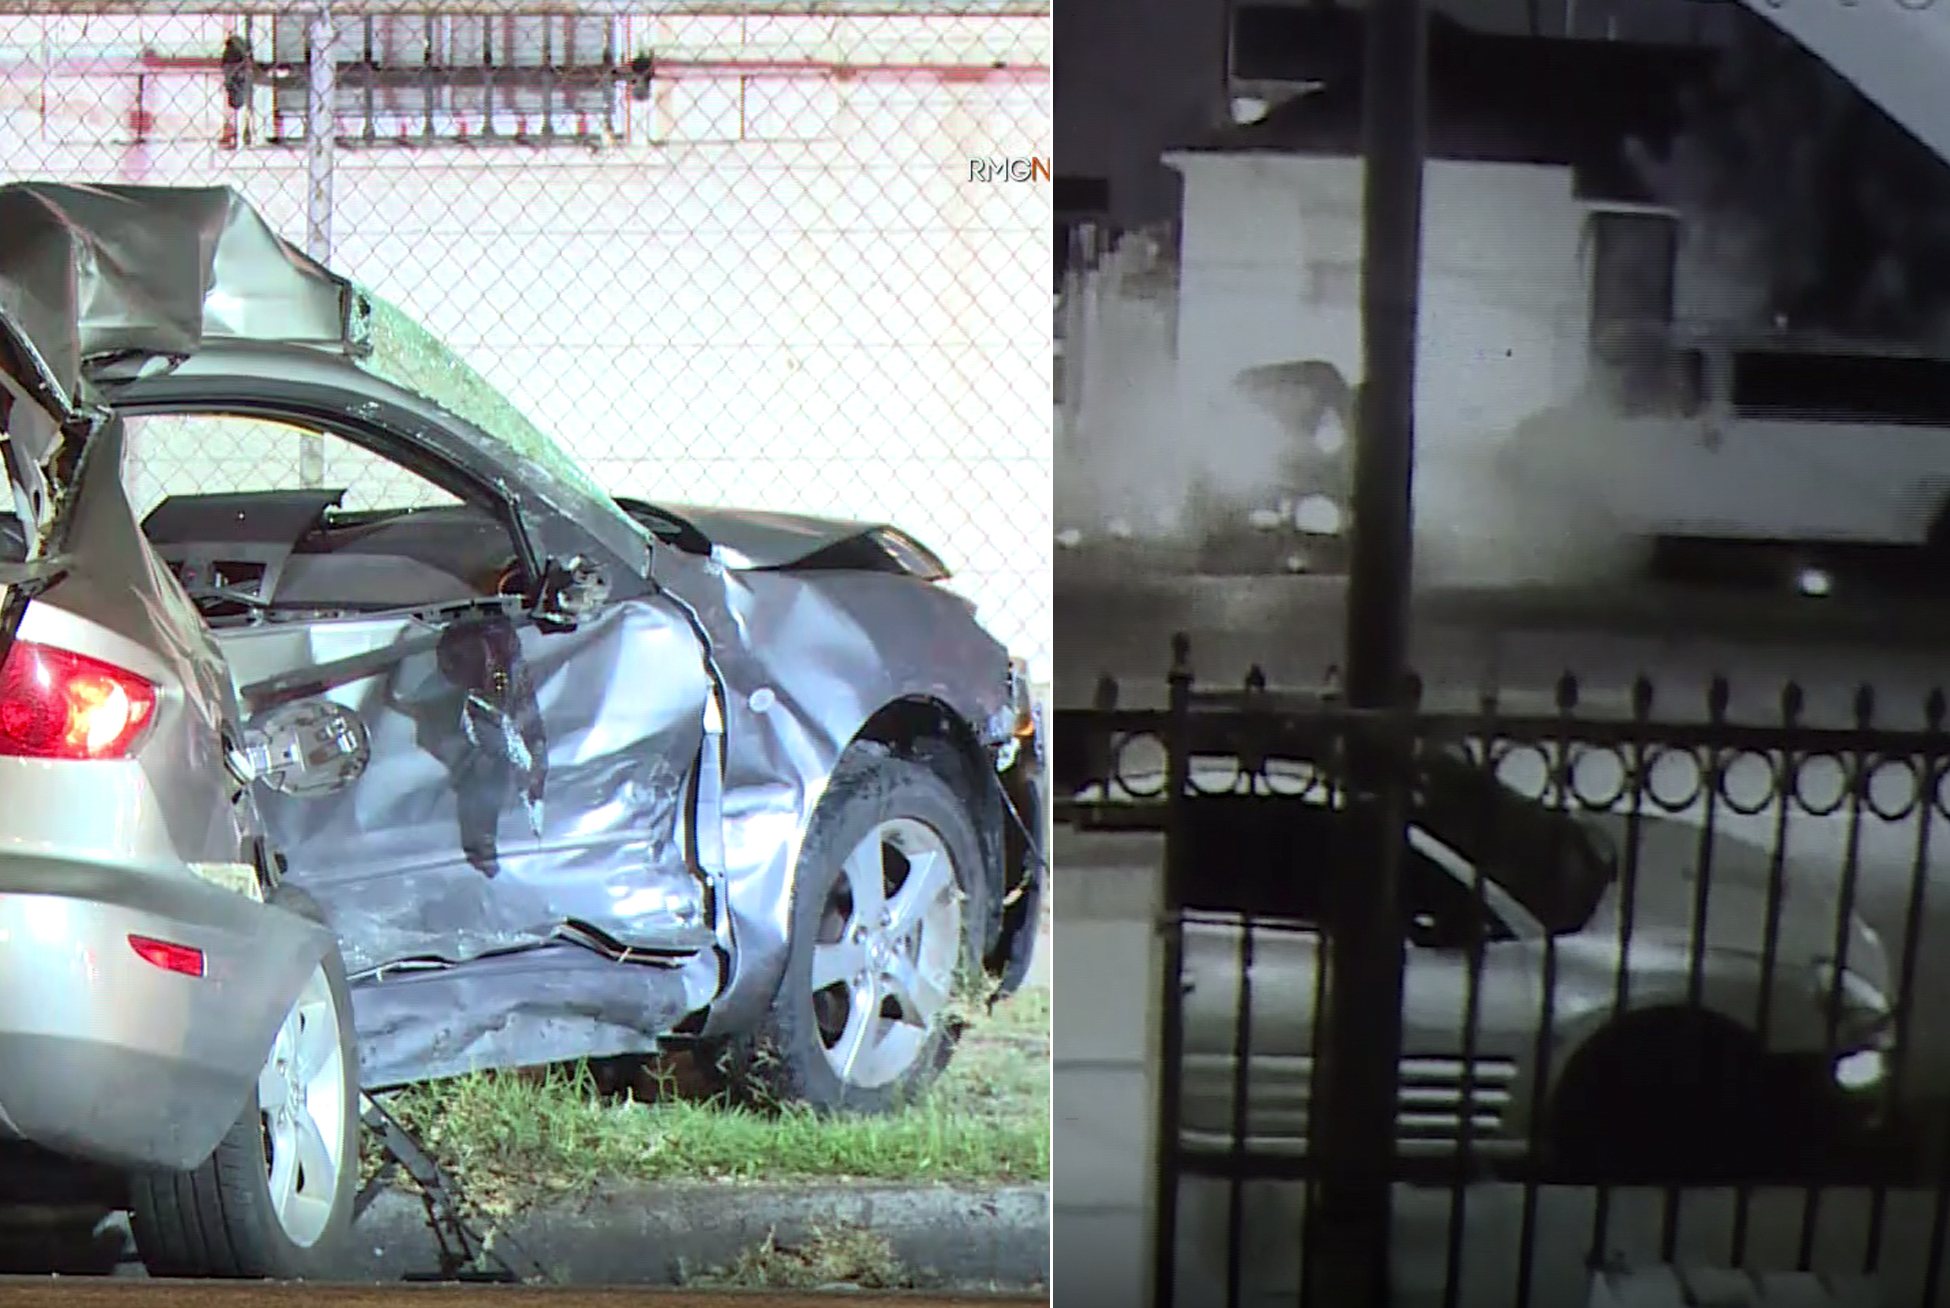 A car involved in a fatal crash in Gramercy Park is seen on Sep. 27, 2019. (Credit: RMG News)